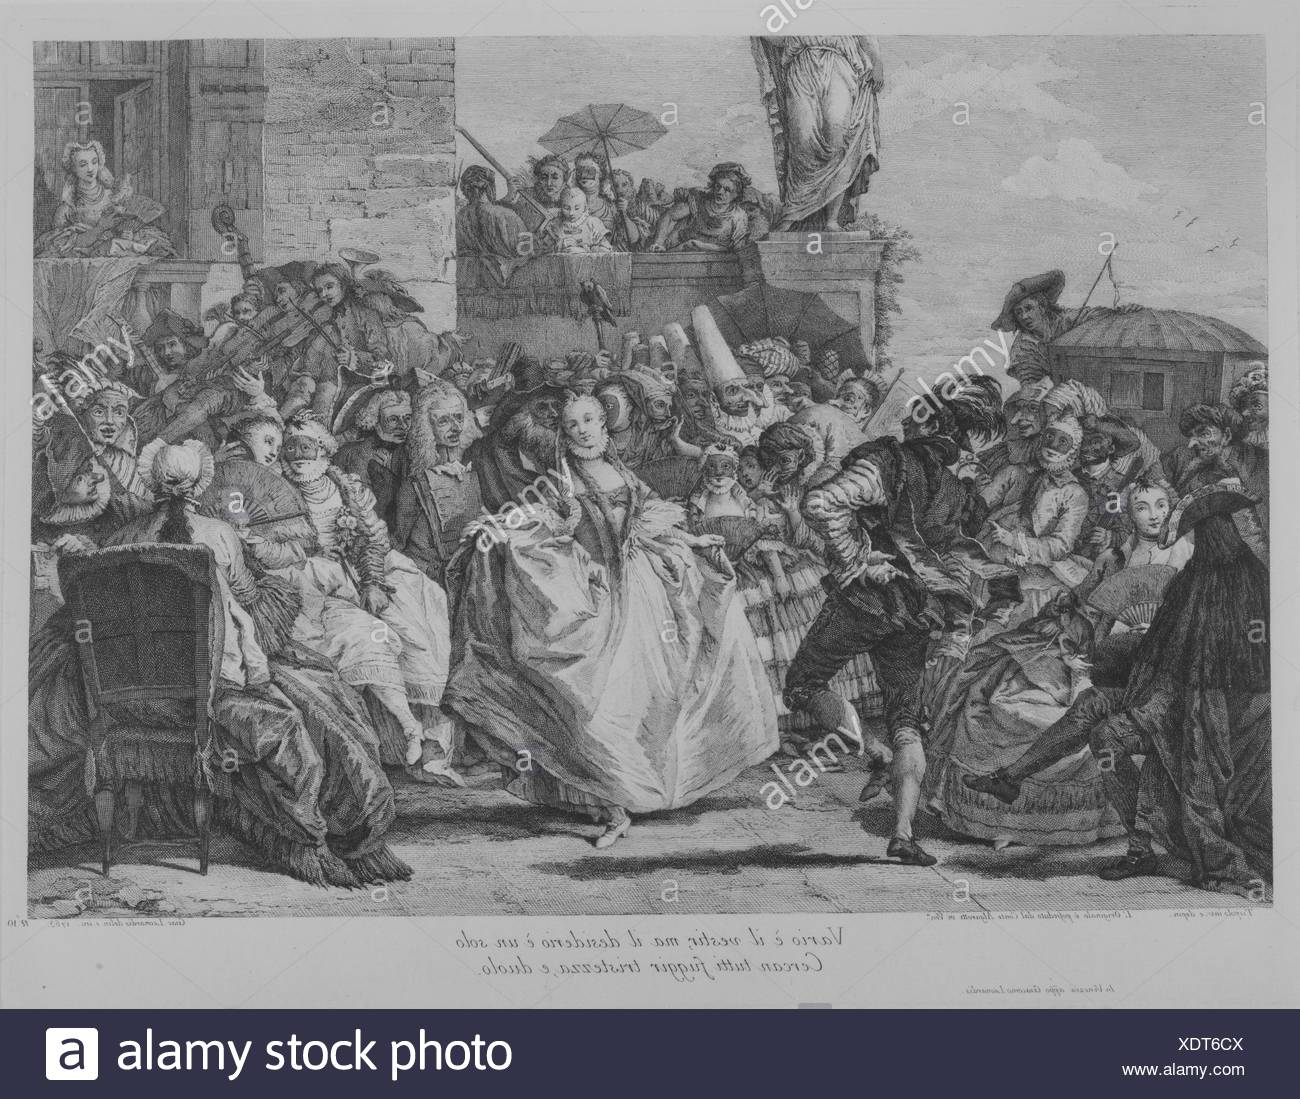 The Minuet. Series/Portfolio: Plate 10 from Selection of Pictures from Venetian Collections, series of nineteen prints; Artist: Giacomo Leonardis - Stock Image